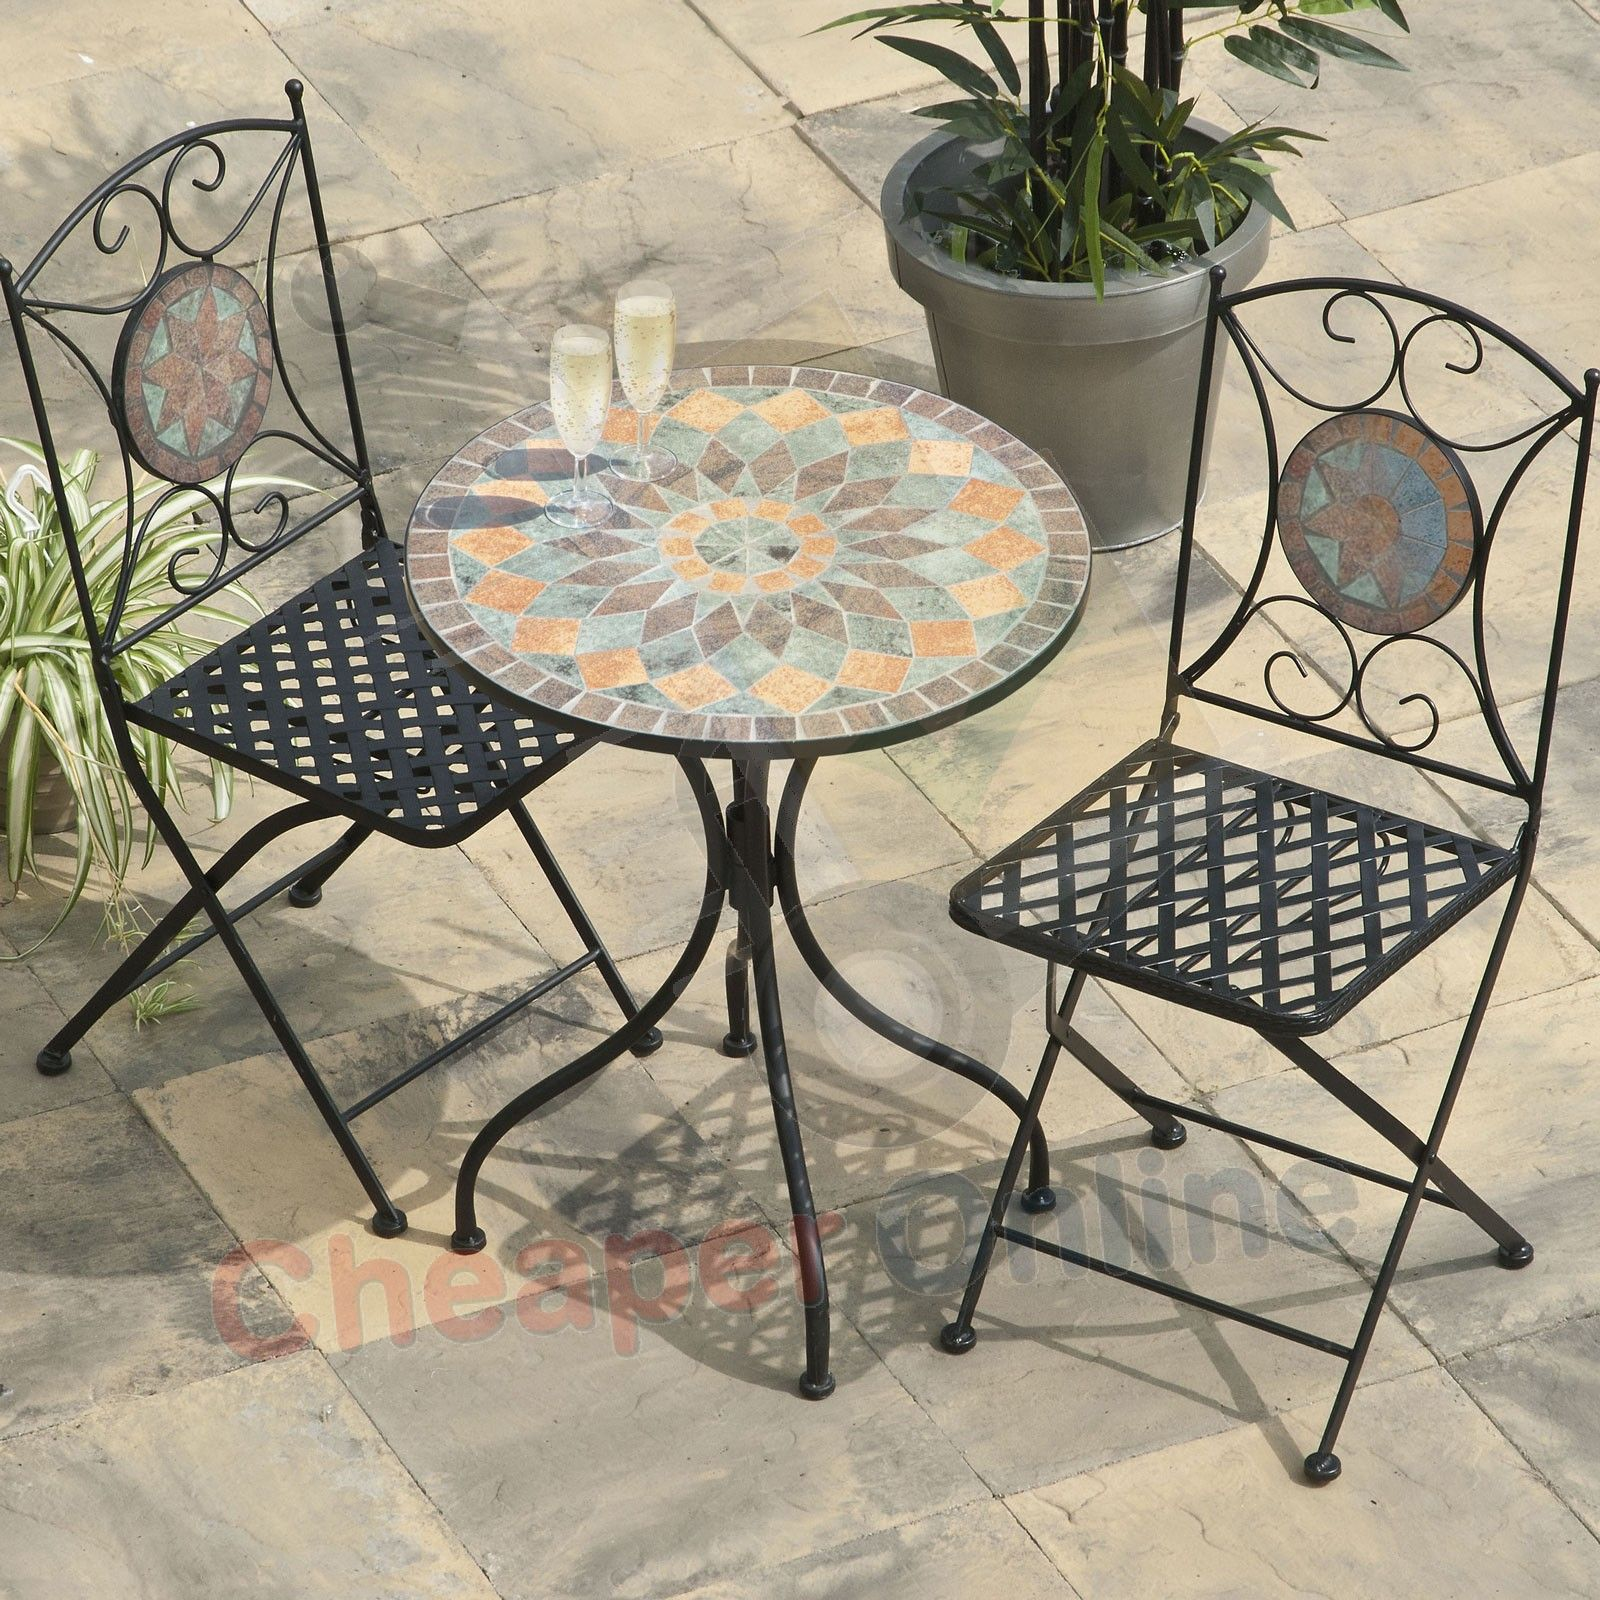 Garden Furniture Tables metal patio furniture mosaic - google search | garden | pinterest